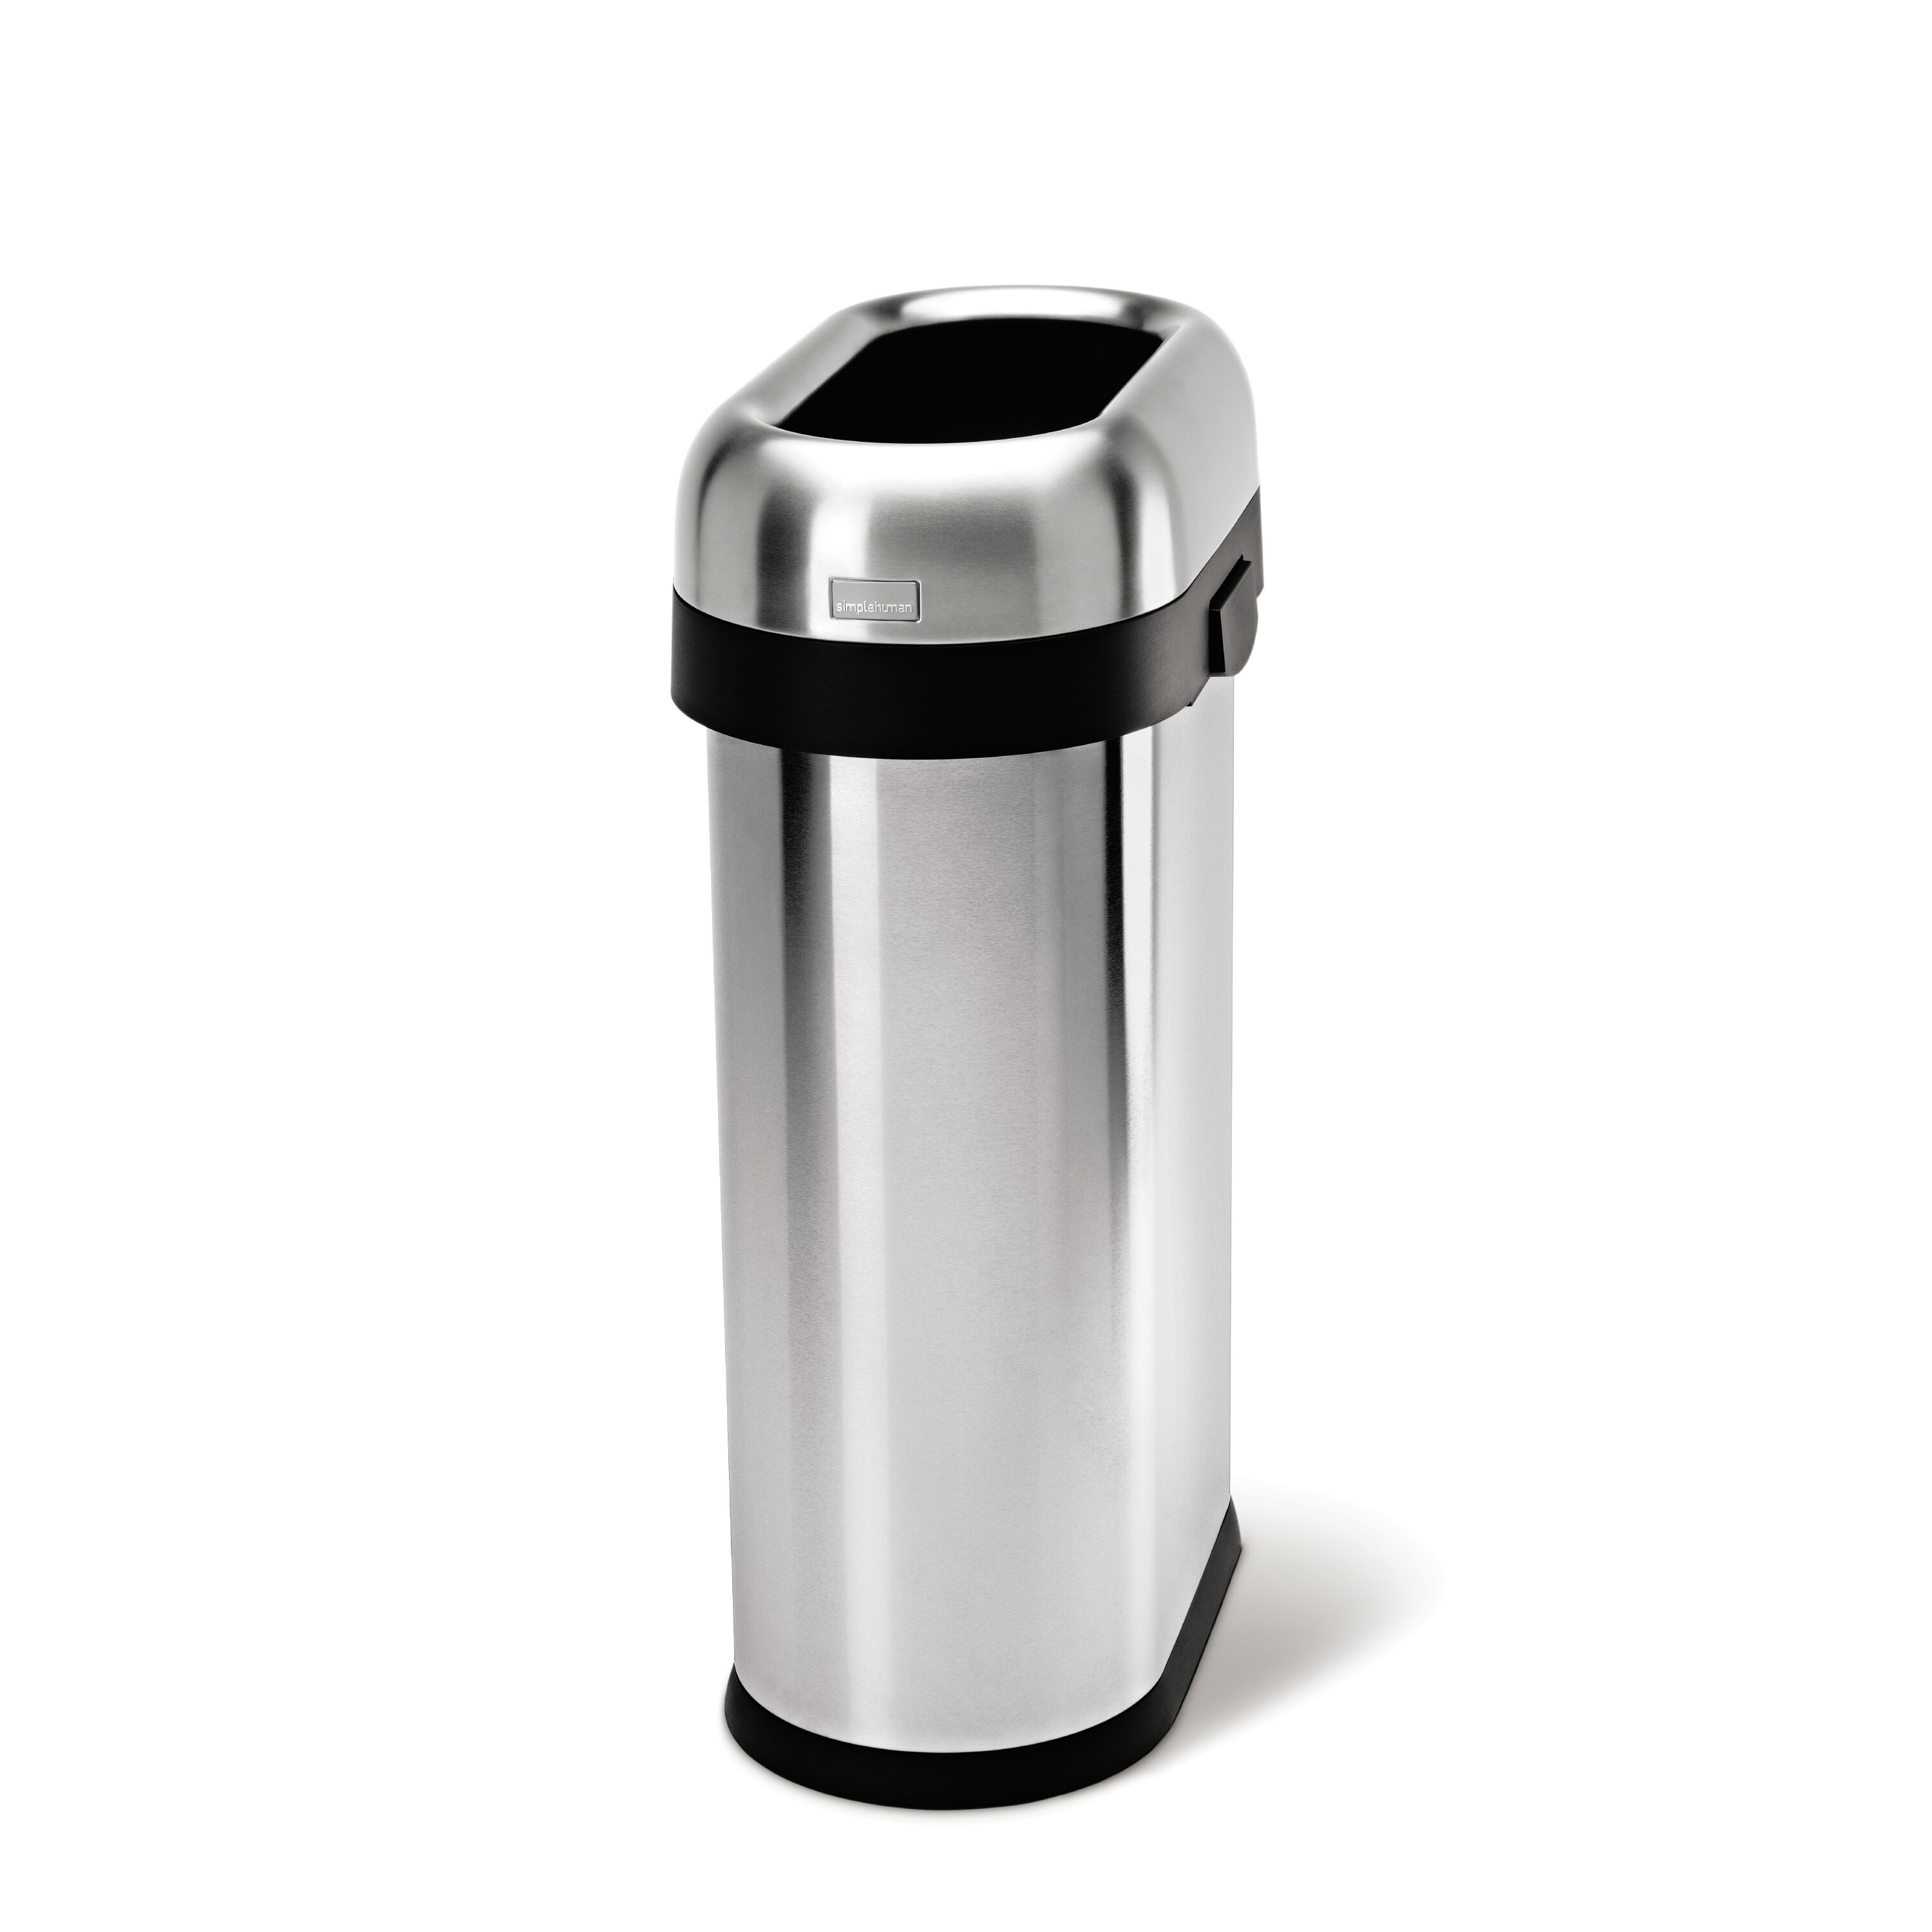 50 L 13 Gal Slim Open Trash Can Commercial Grade